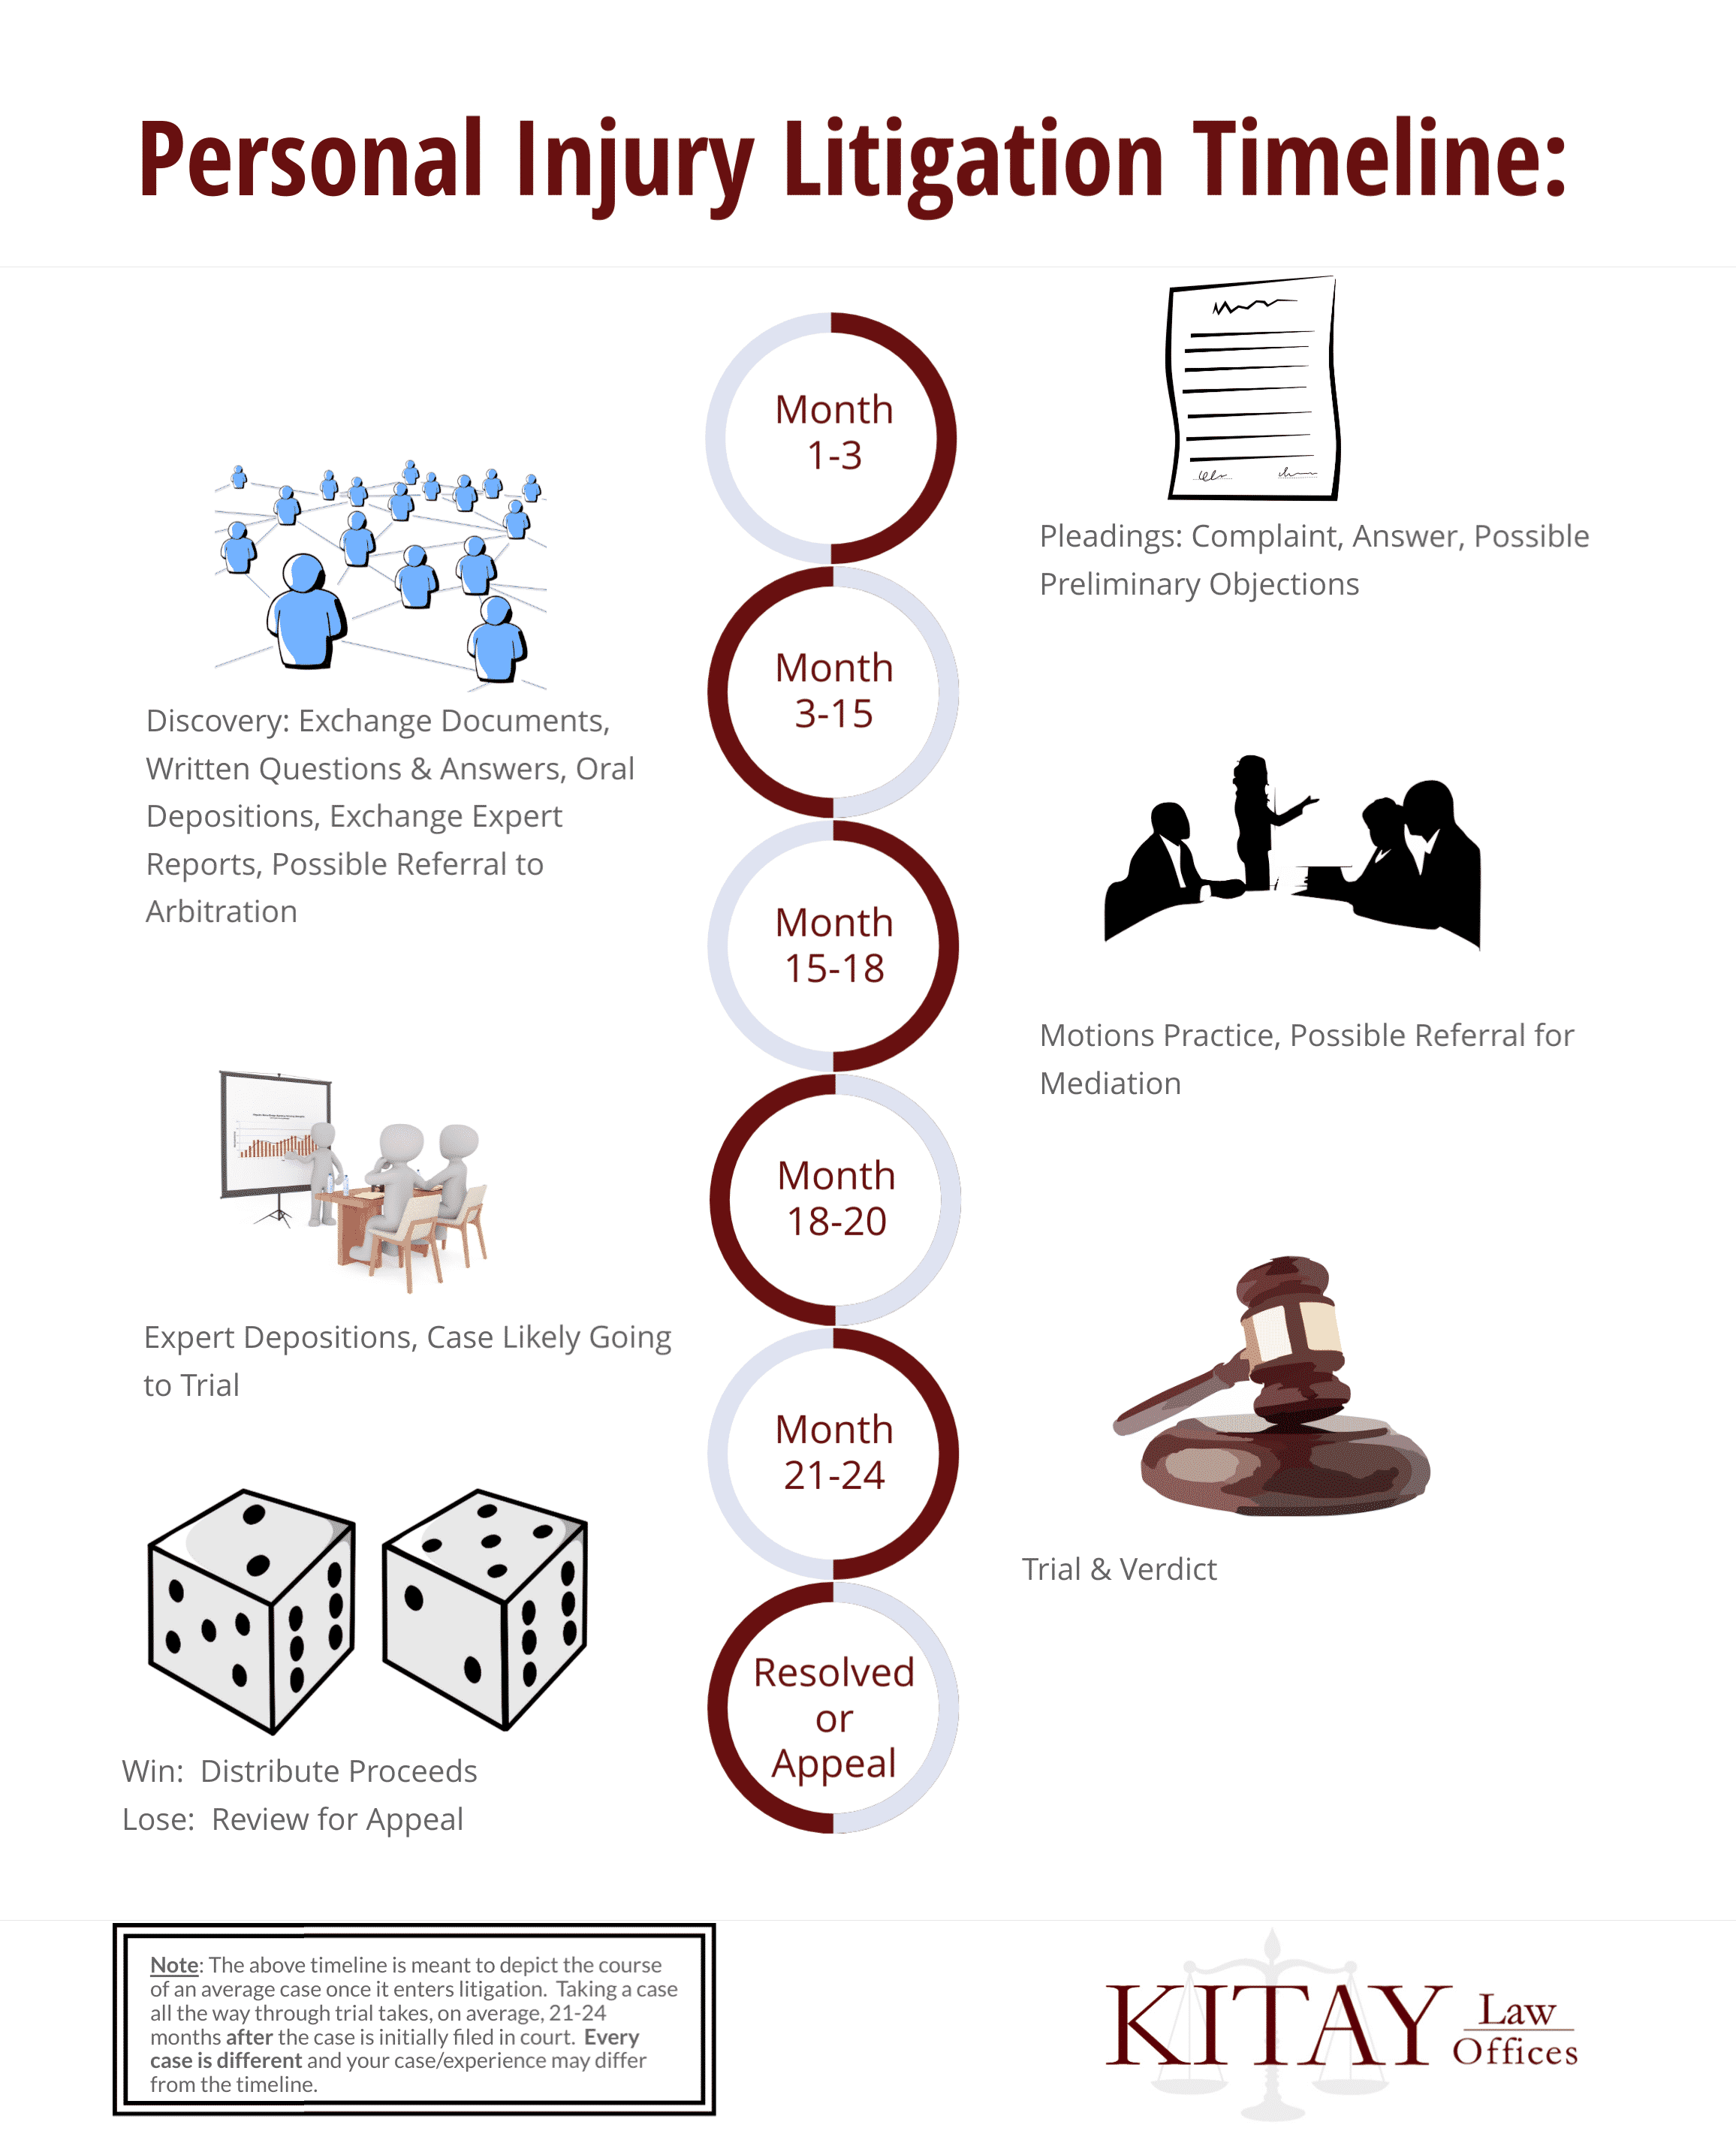 Personal Injury Litigation Timeline